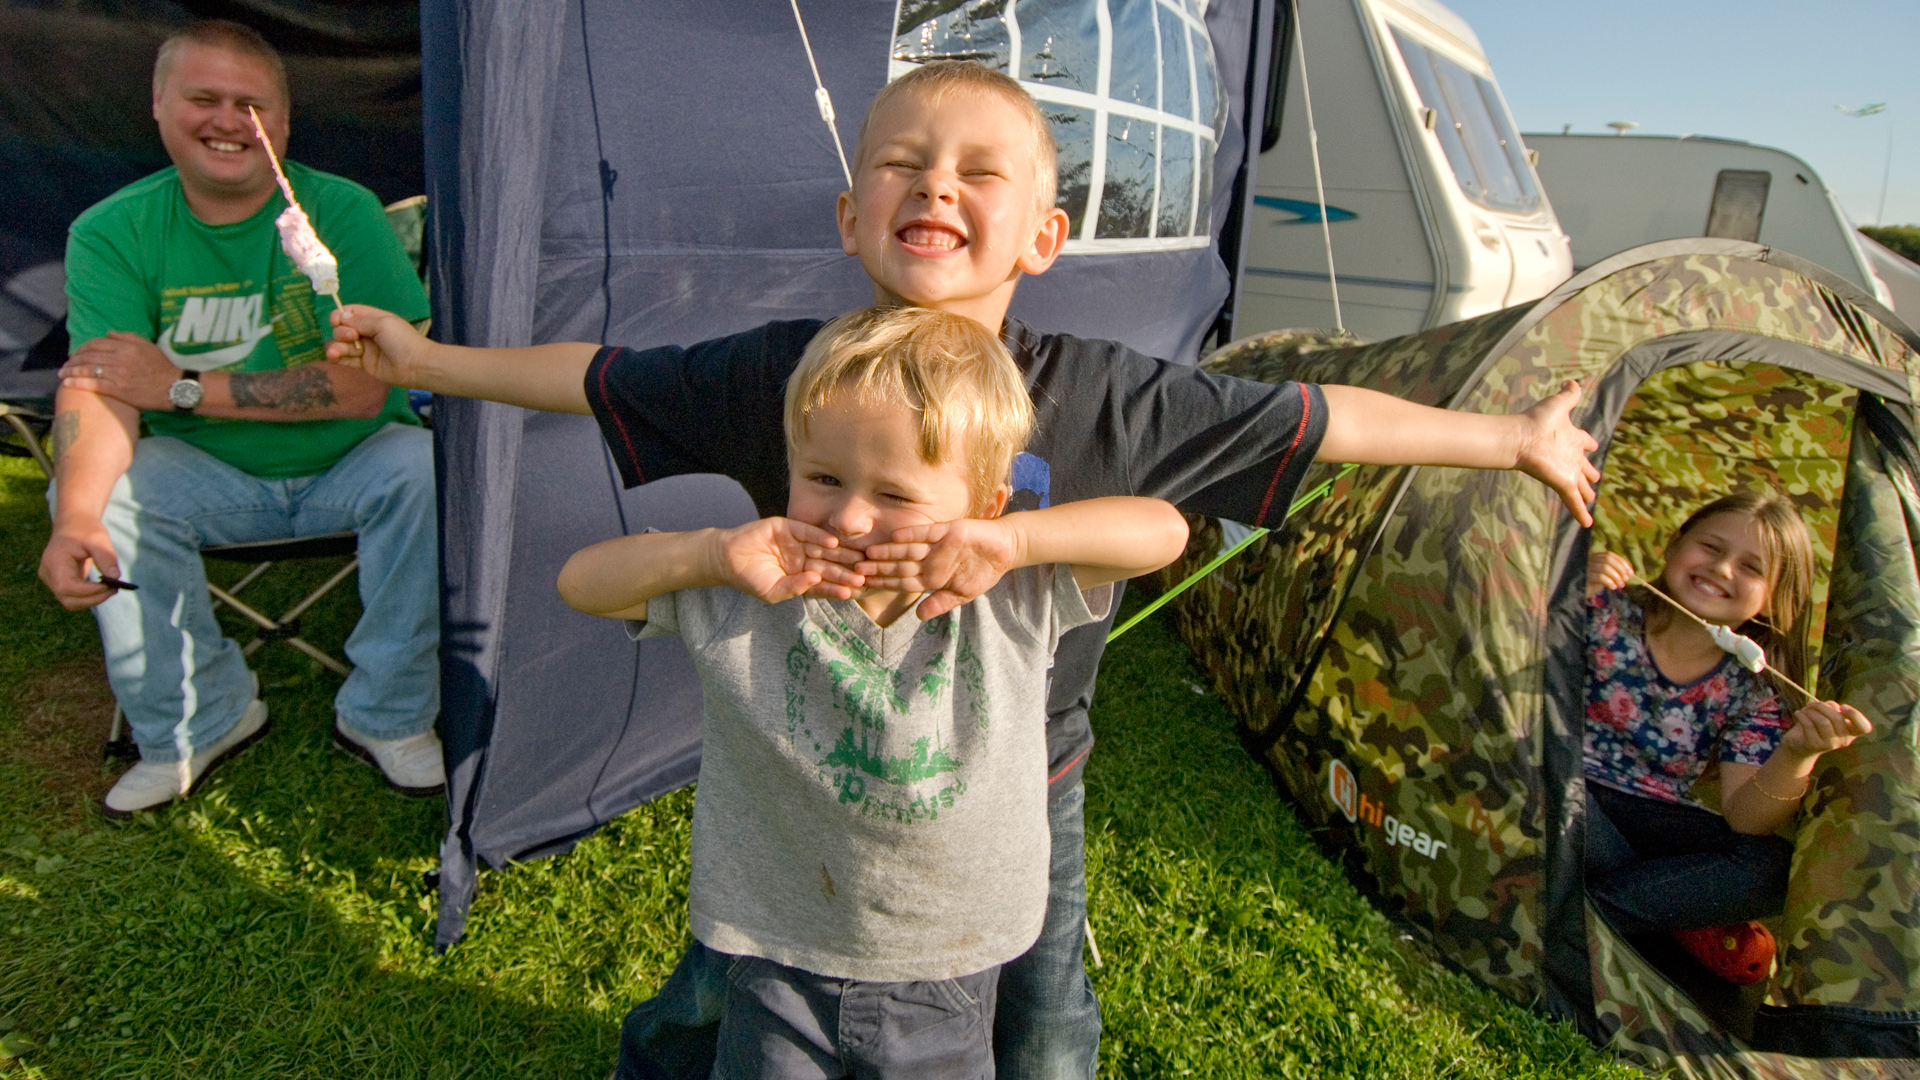 Family camping in Devon